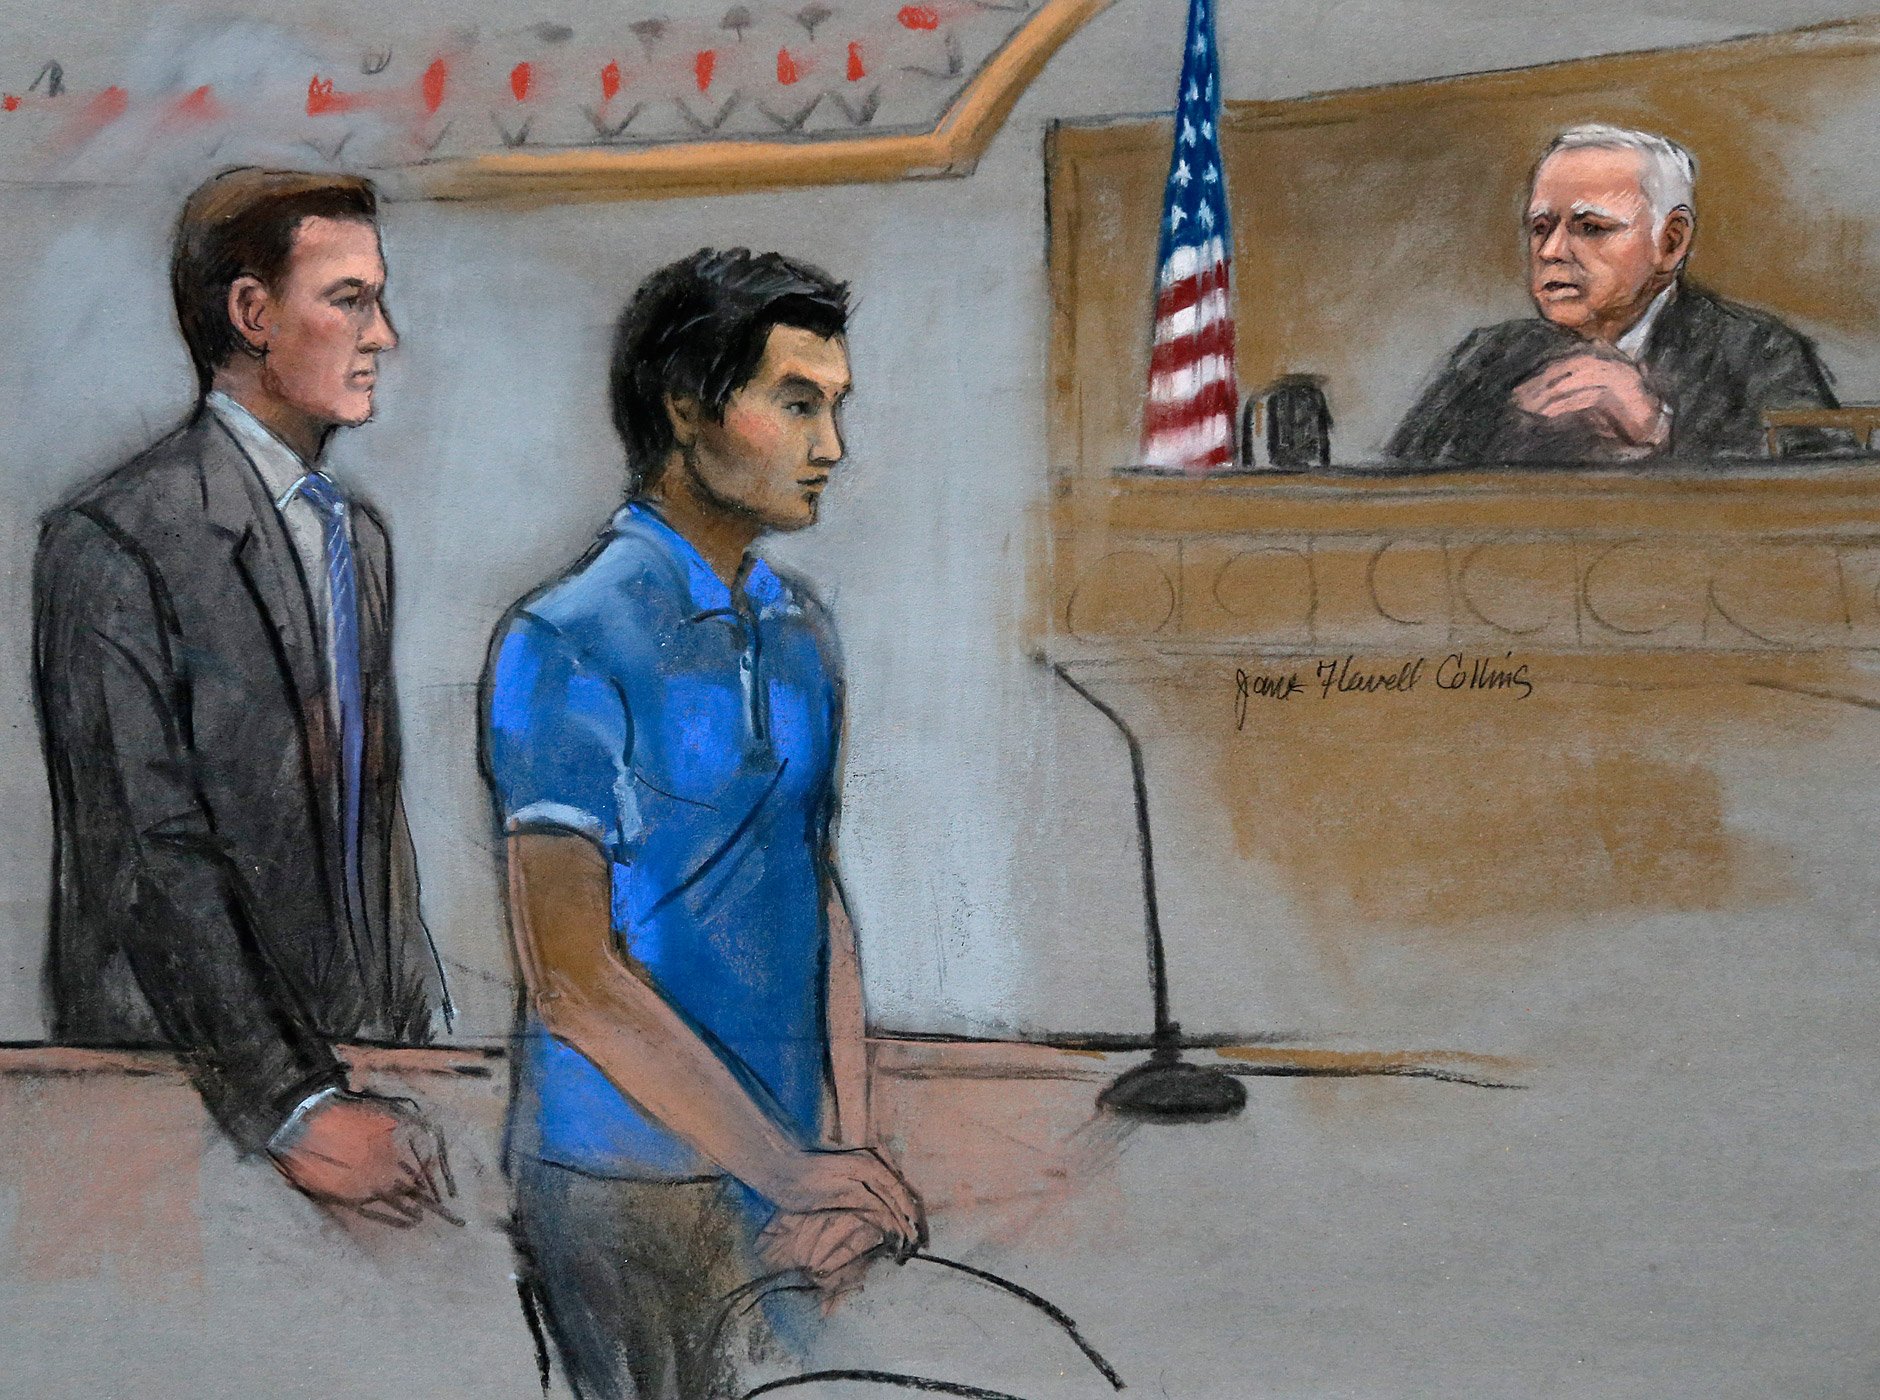 Dias Kadyrbayev, center, a college friend of Boston Marathon bombing suspect Dzhokhar Tsarnaev, is depicted in federal court in Boston on Aug. 21, 2014.